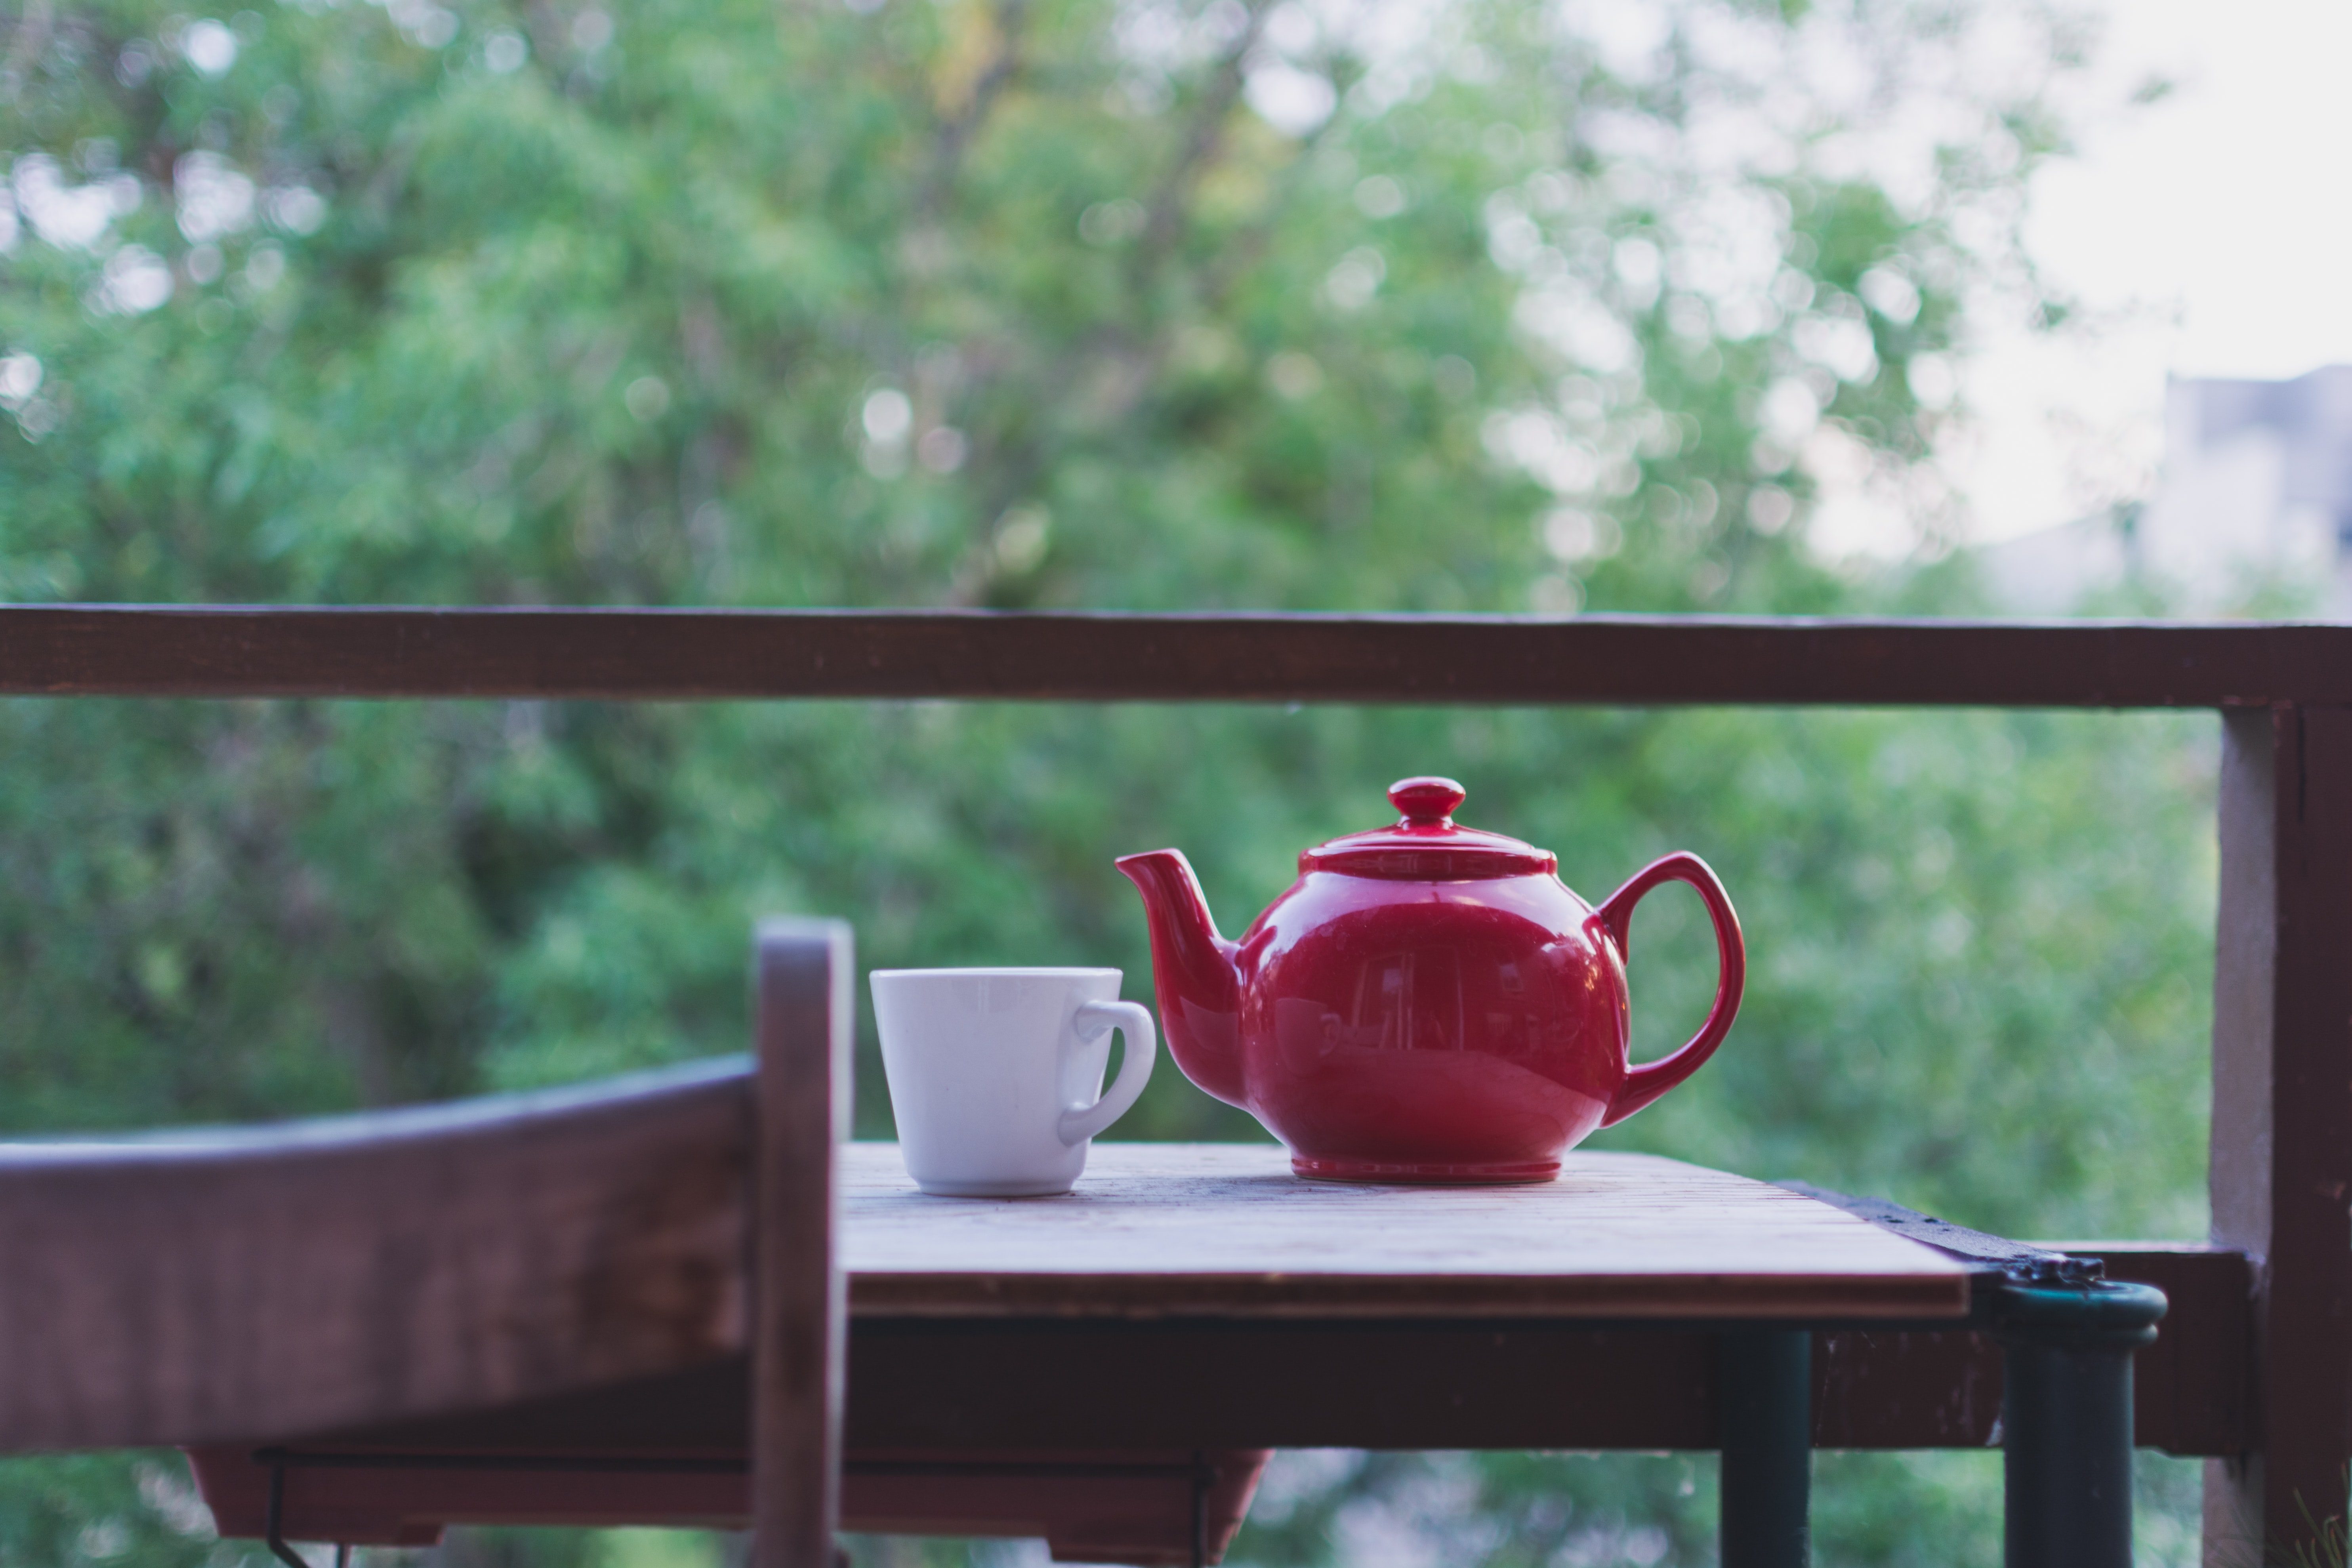 Red teapot and white mug on an outdoor table with view of trees